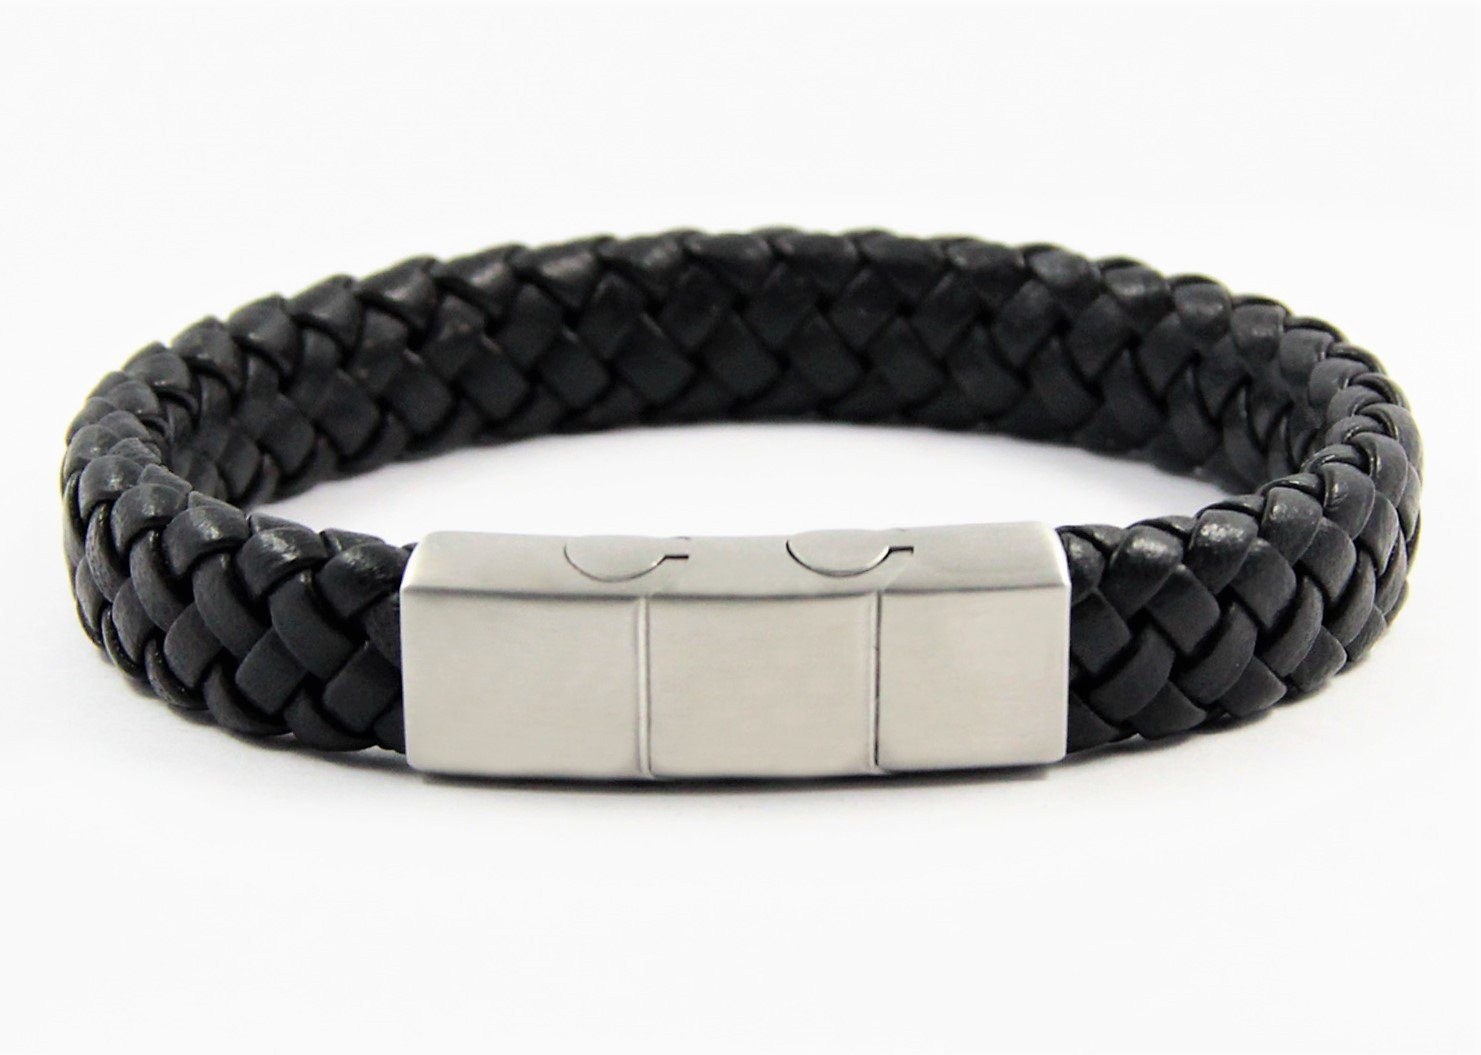 Magnetic Leather Bracelet in Black